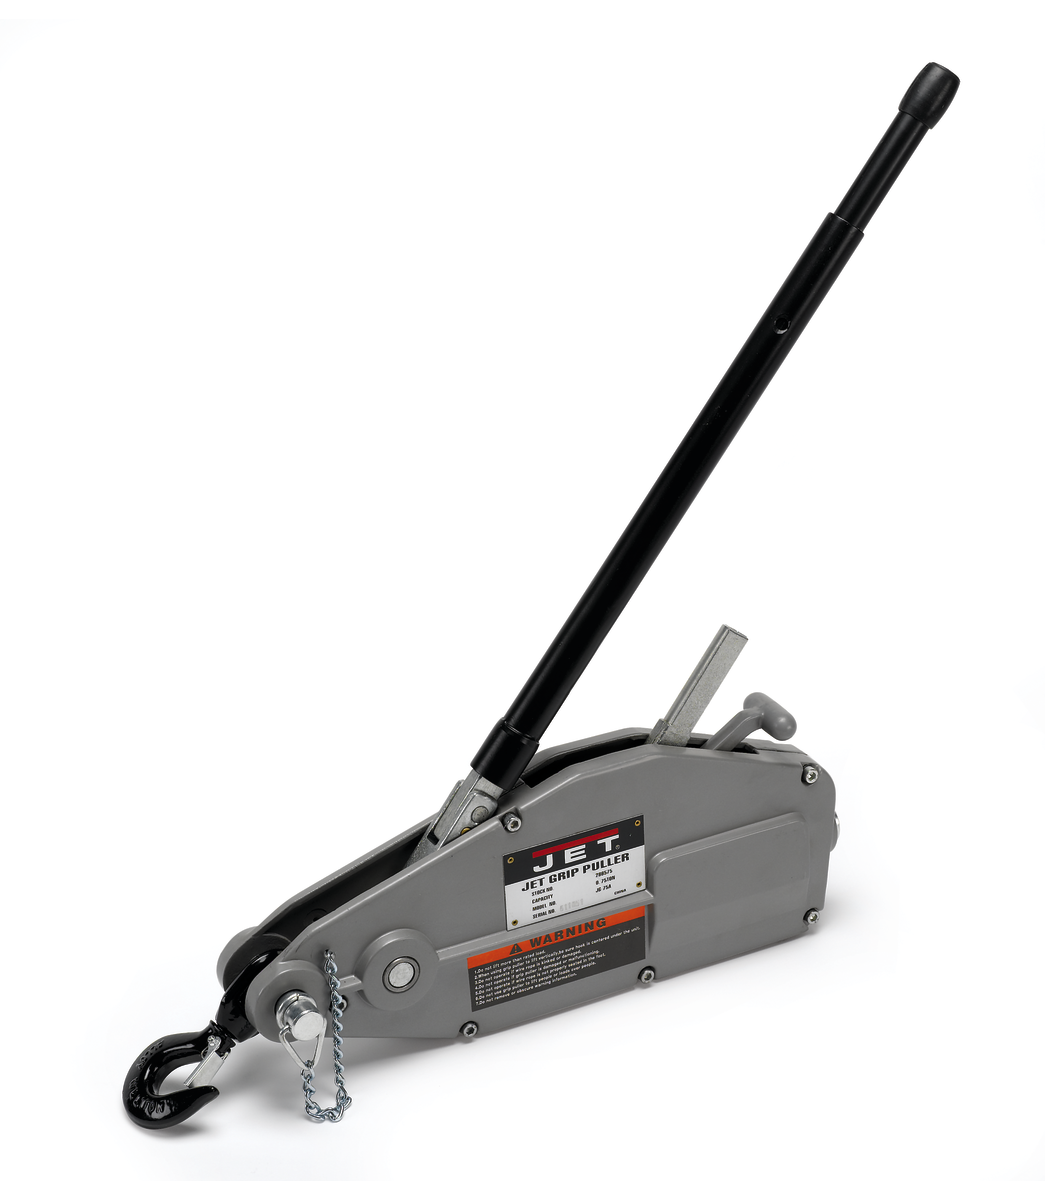 JG-150, 1-1/2 Ton Grip Puller Without Cable